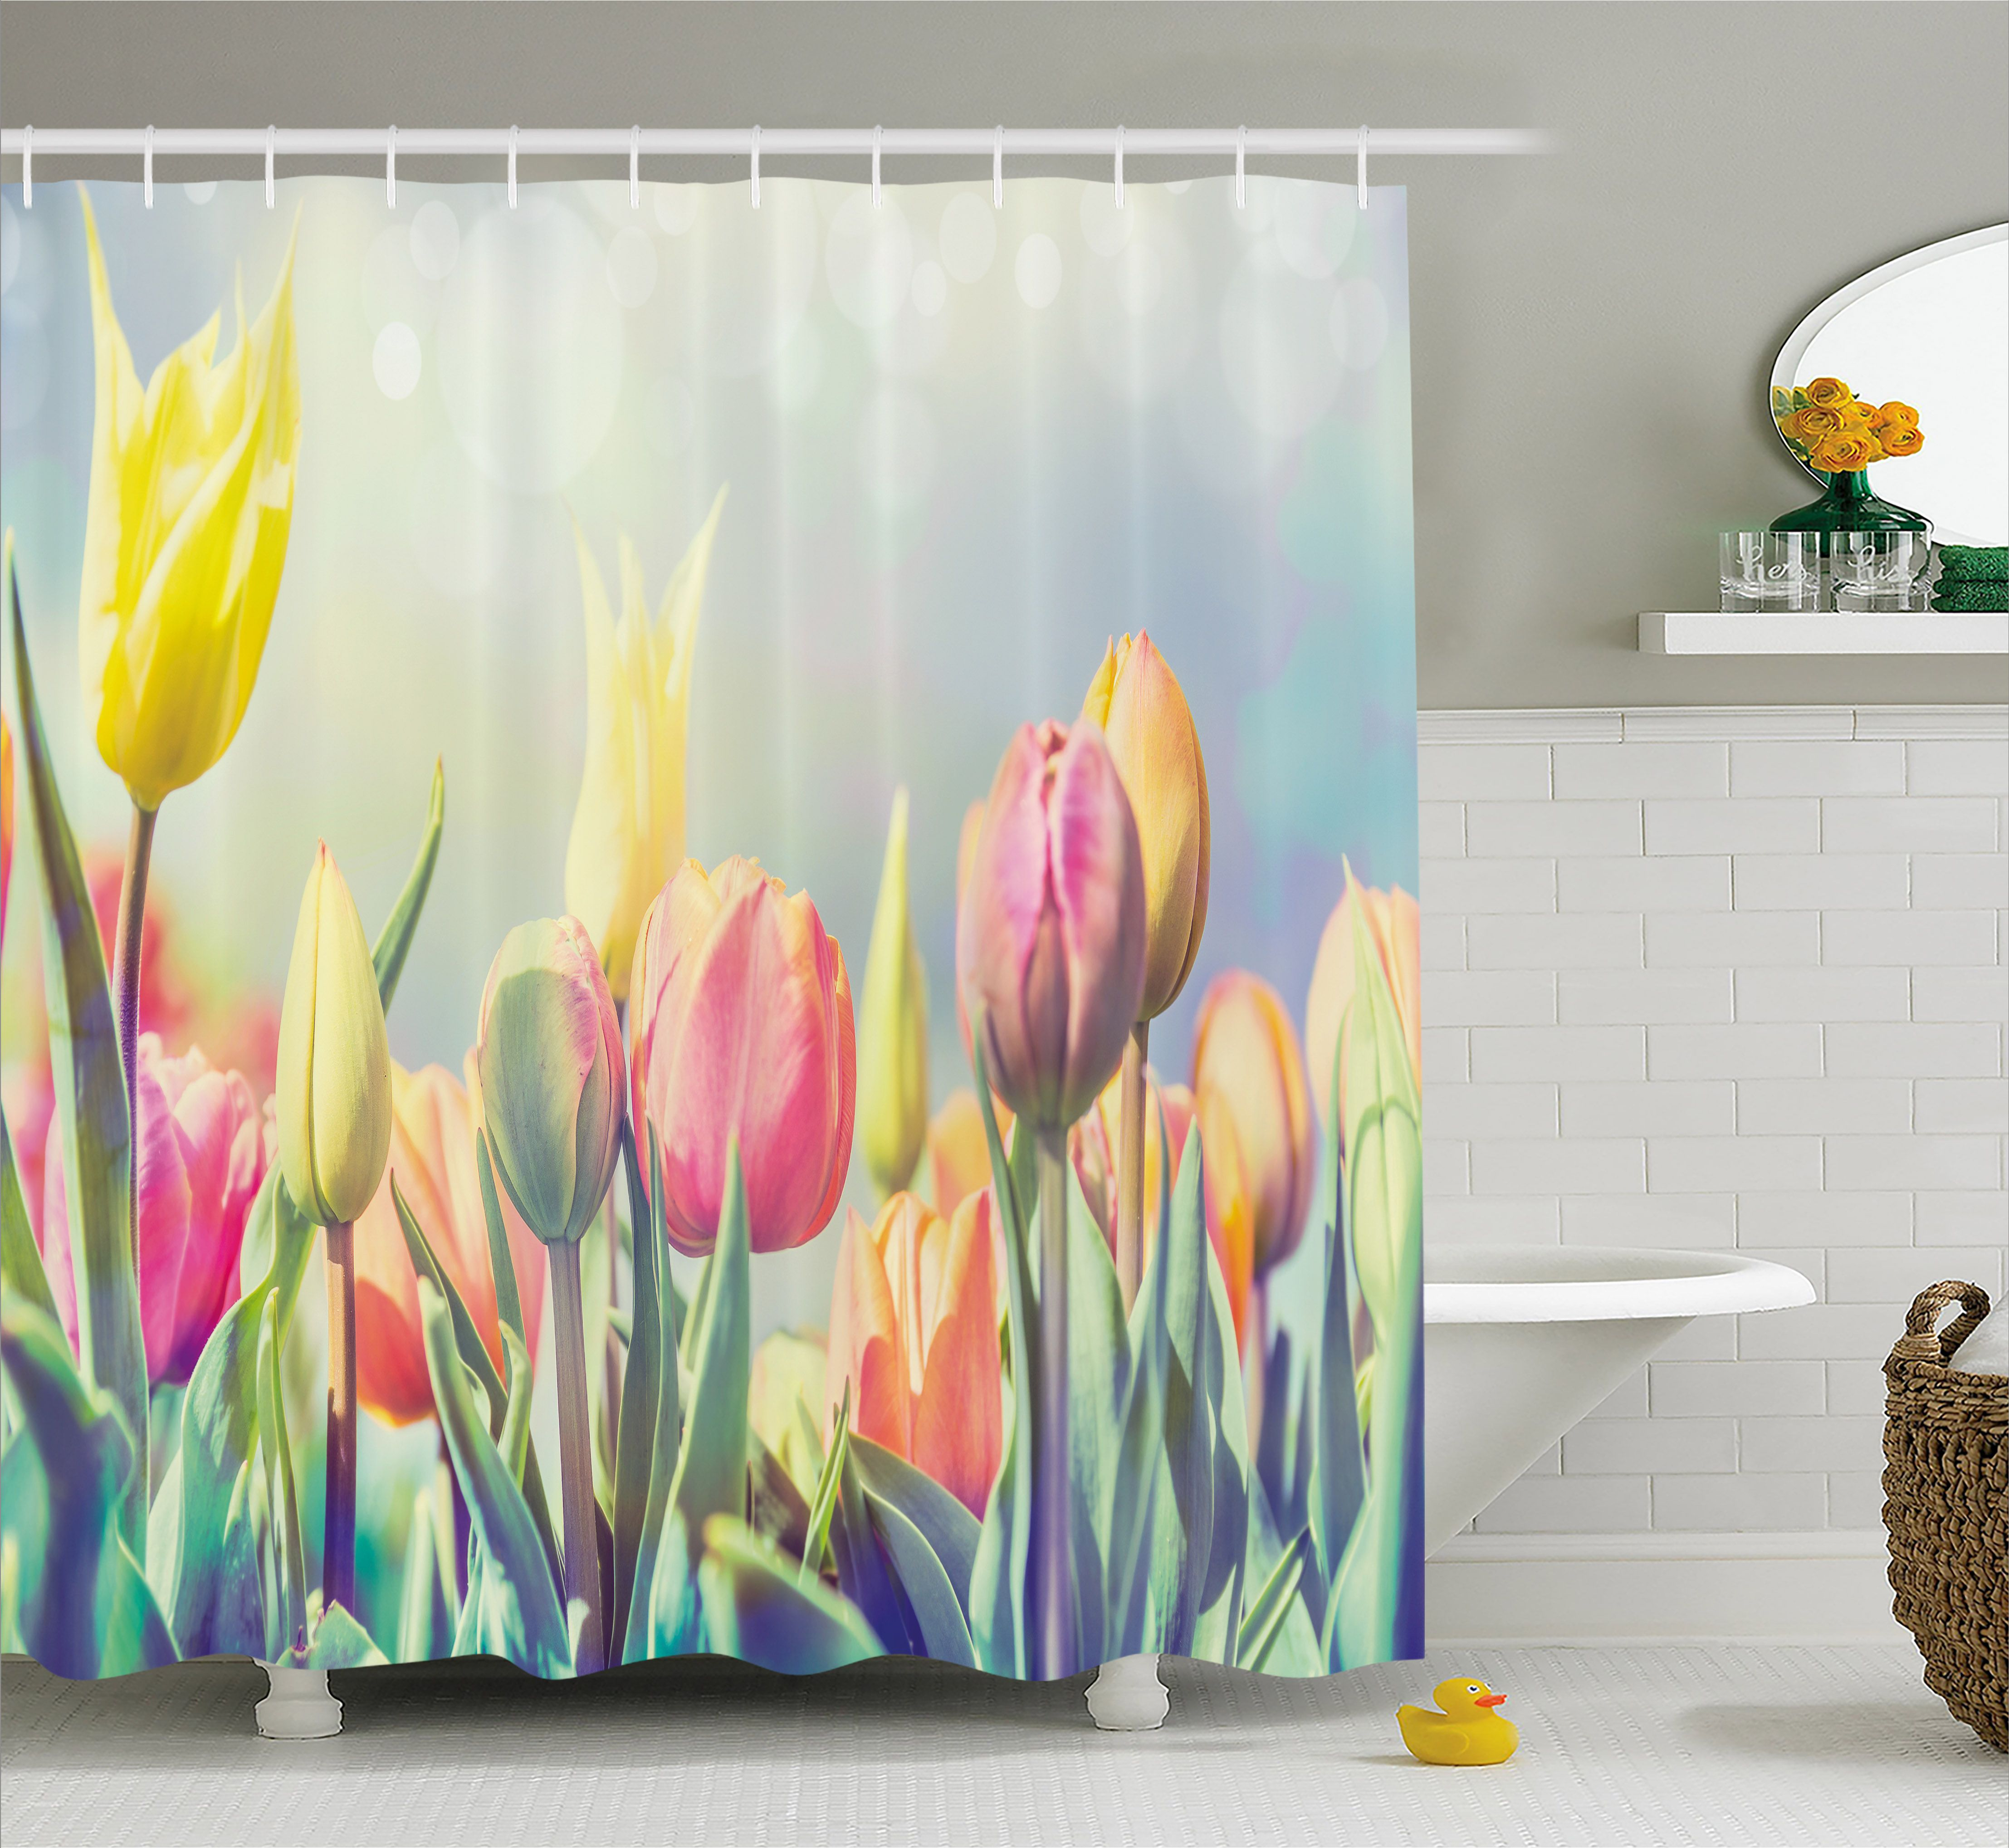 Home With Images Bathroom Sets Shower Curtain Curtains